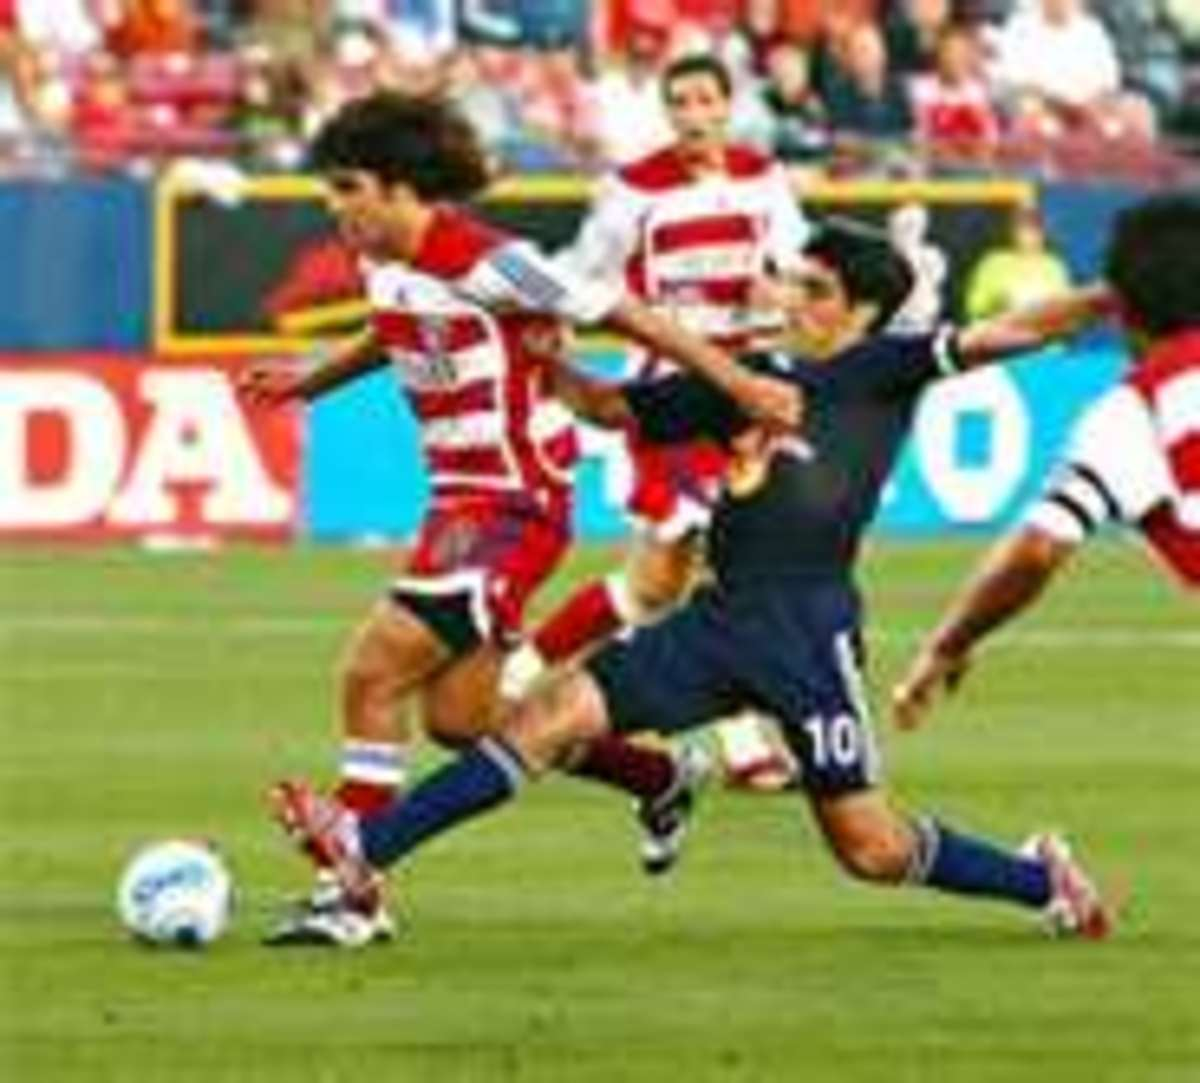 Former US captain Claudio Reyna with a textbook poke tackle.